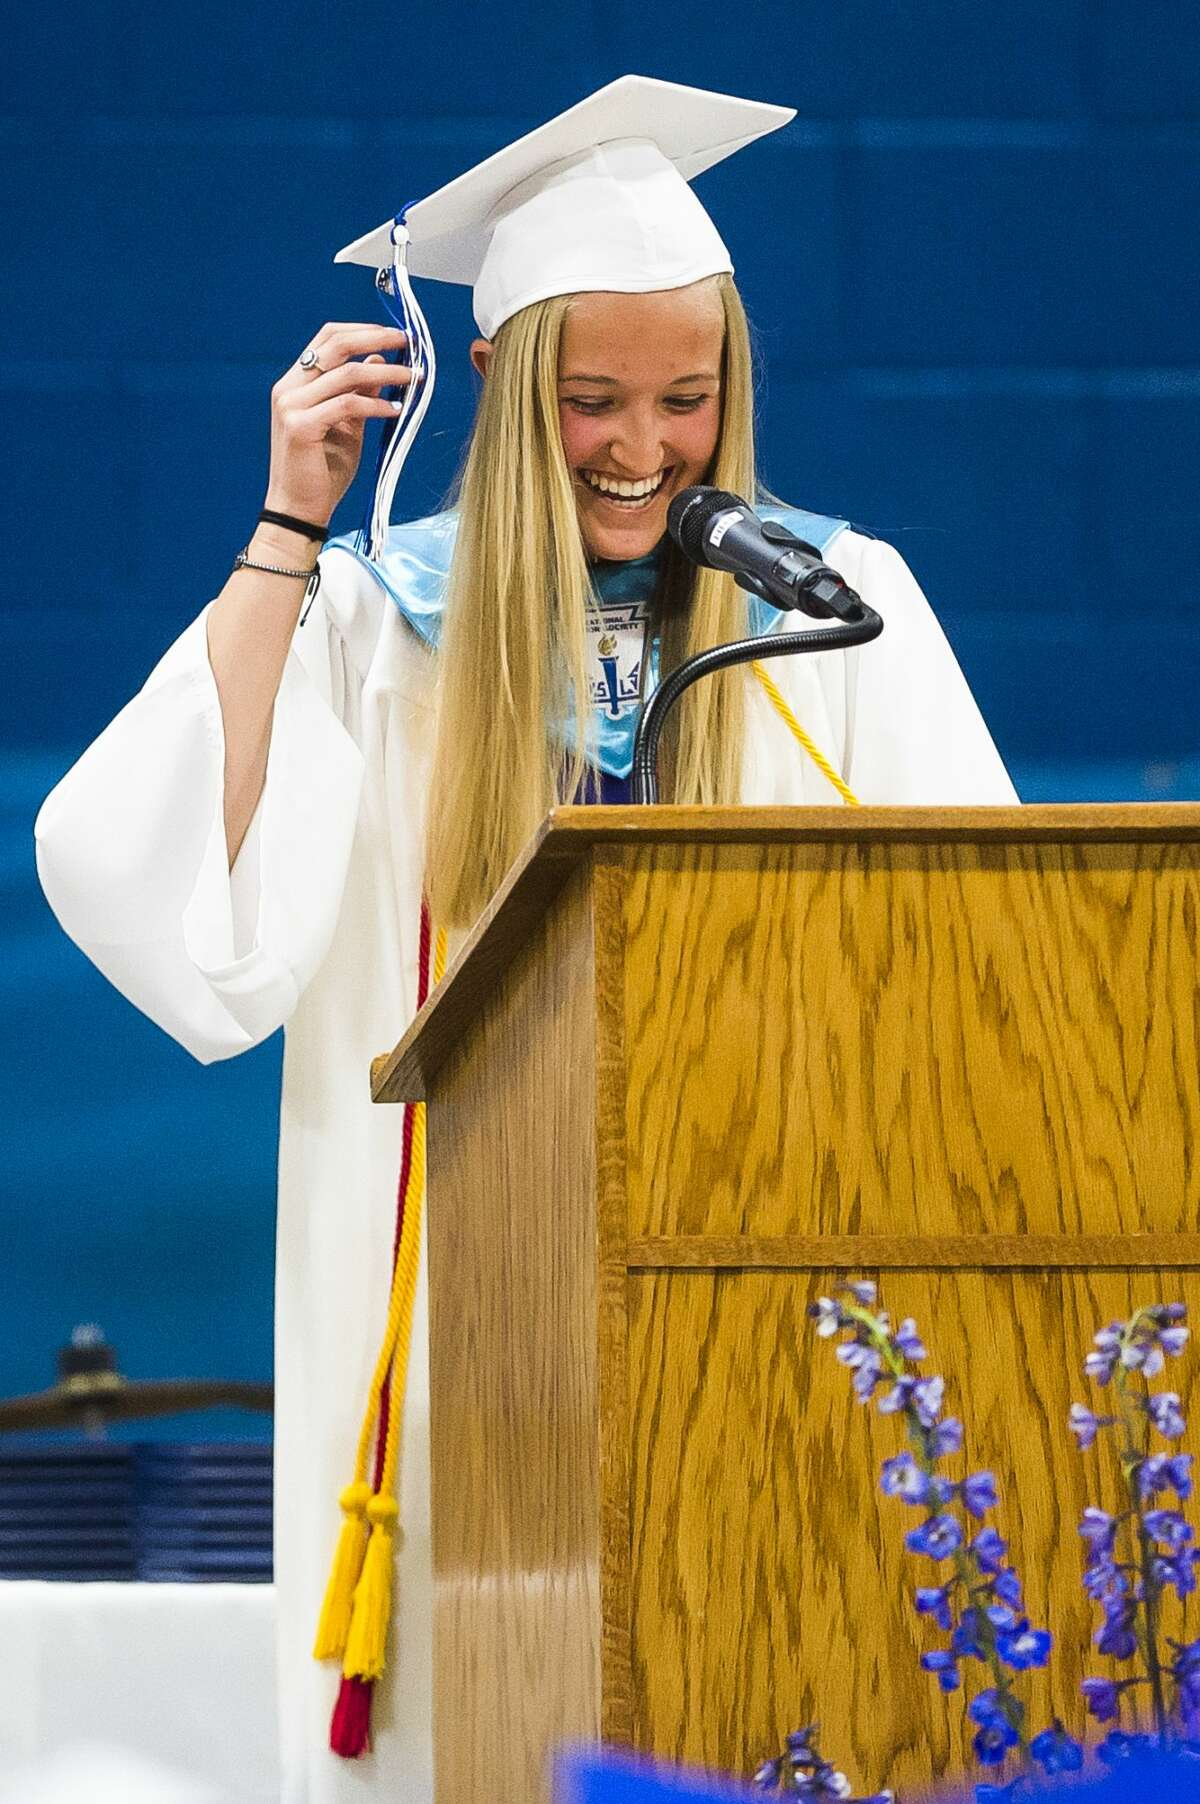 Coleman High School students celebrate their graduation with a commencement ceremony on Sunday, June 2, 2019 in the school's gymnasium. (Katy Kildee/kkildee@mdn.net)